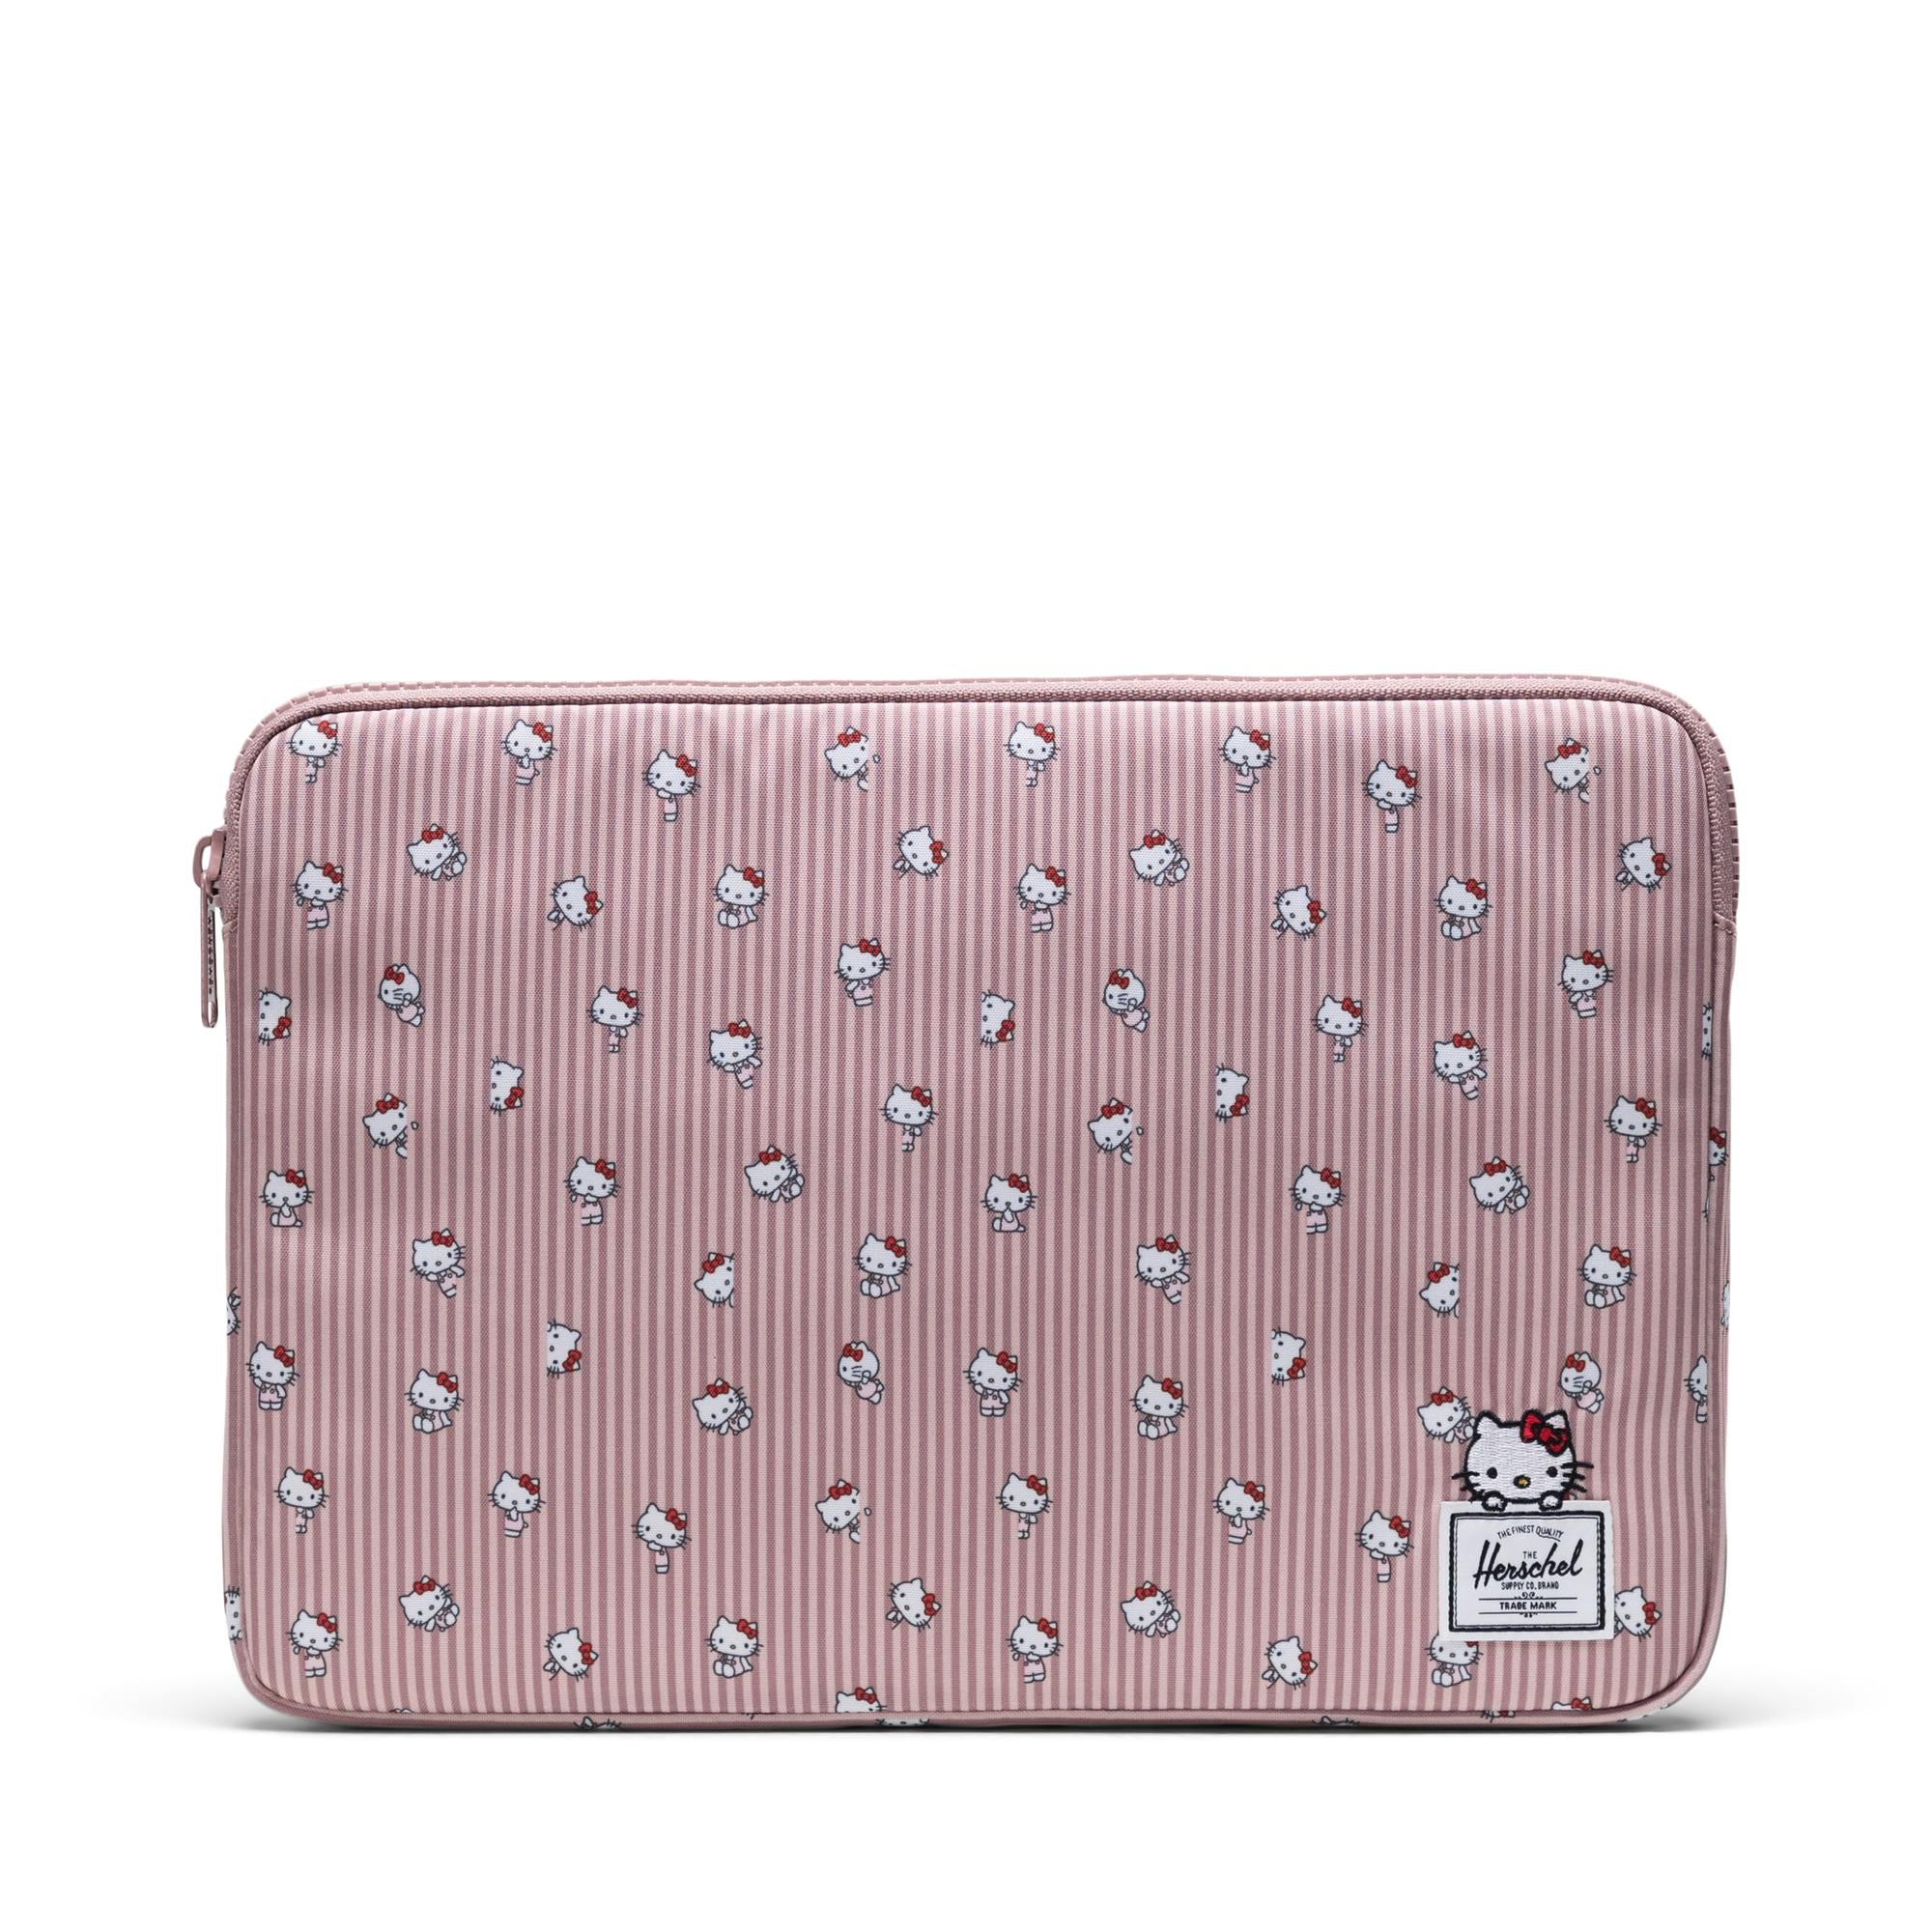 Hello Kitty Yellow 10-13 13-17 Neoprene Laptop Sleeve Bag Carrying,Case Premium Laptop Briefcase Fits Up to 17 Inch Water-Repellent for Travel//Business//School//Men//Women